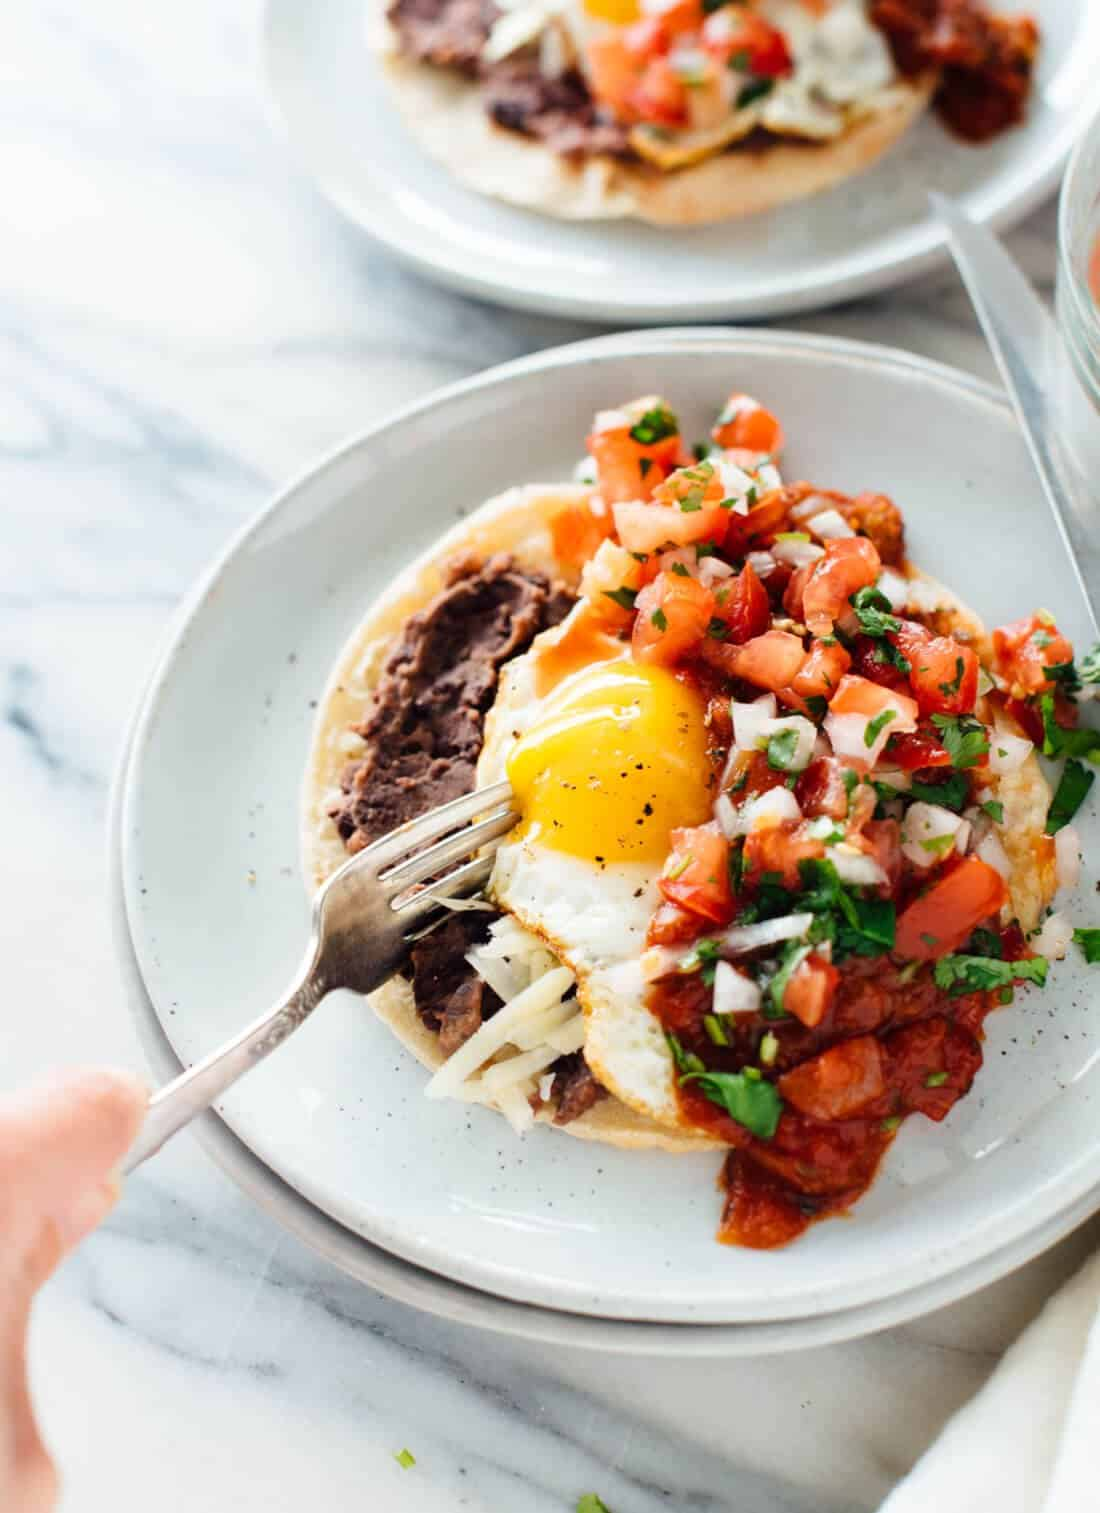 These 15 Vegetarian Recipes Are So Satisfying You'll Want to Go Meatless for an Entire Month! Now I have some healthy veggie recipes to try for breakfast, lunch, and dinner like this Huevos Rancheros Recipe!